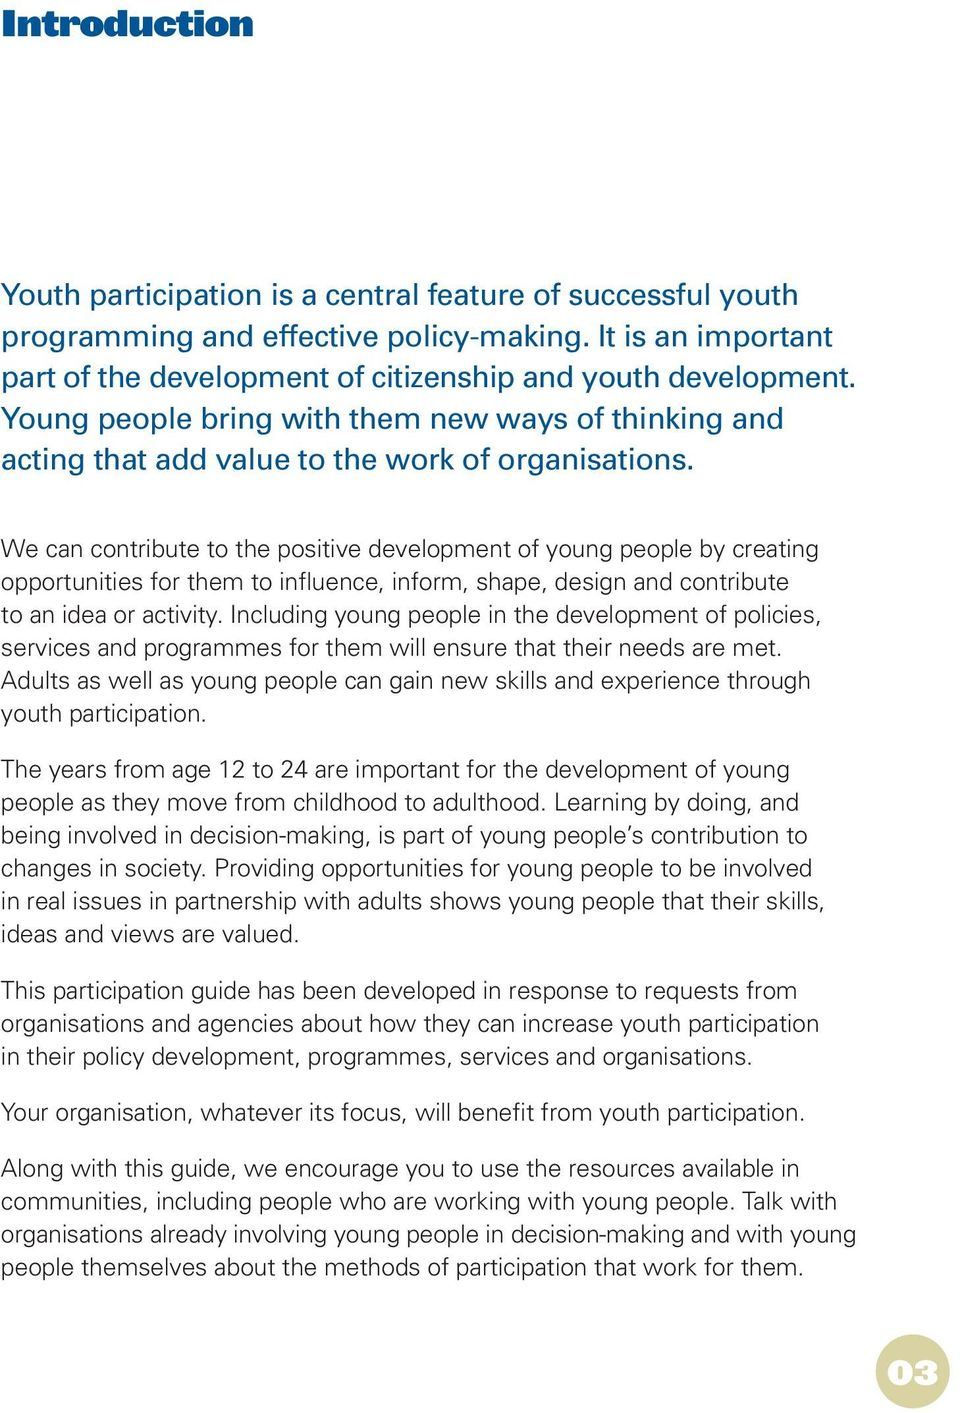 We can contribute to the positive development of young people by creating opportunities for them to influence, inform, shape, design and contribute to an idea or activity.